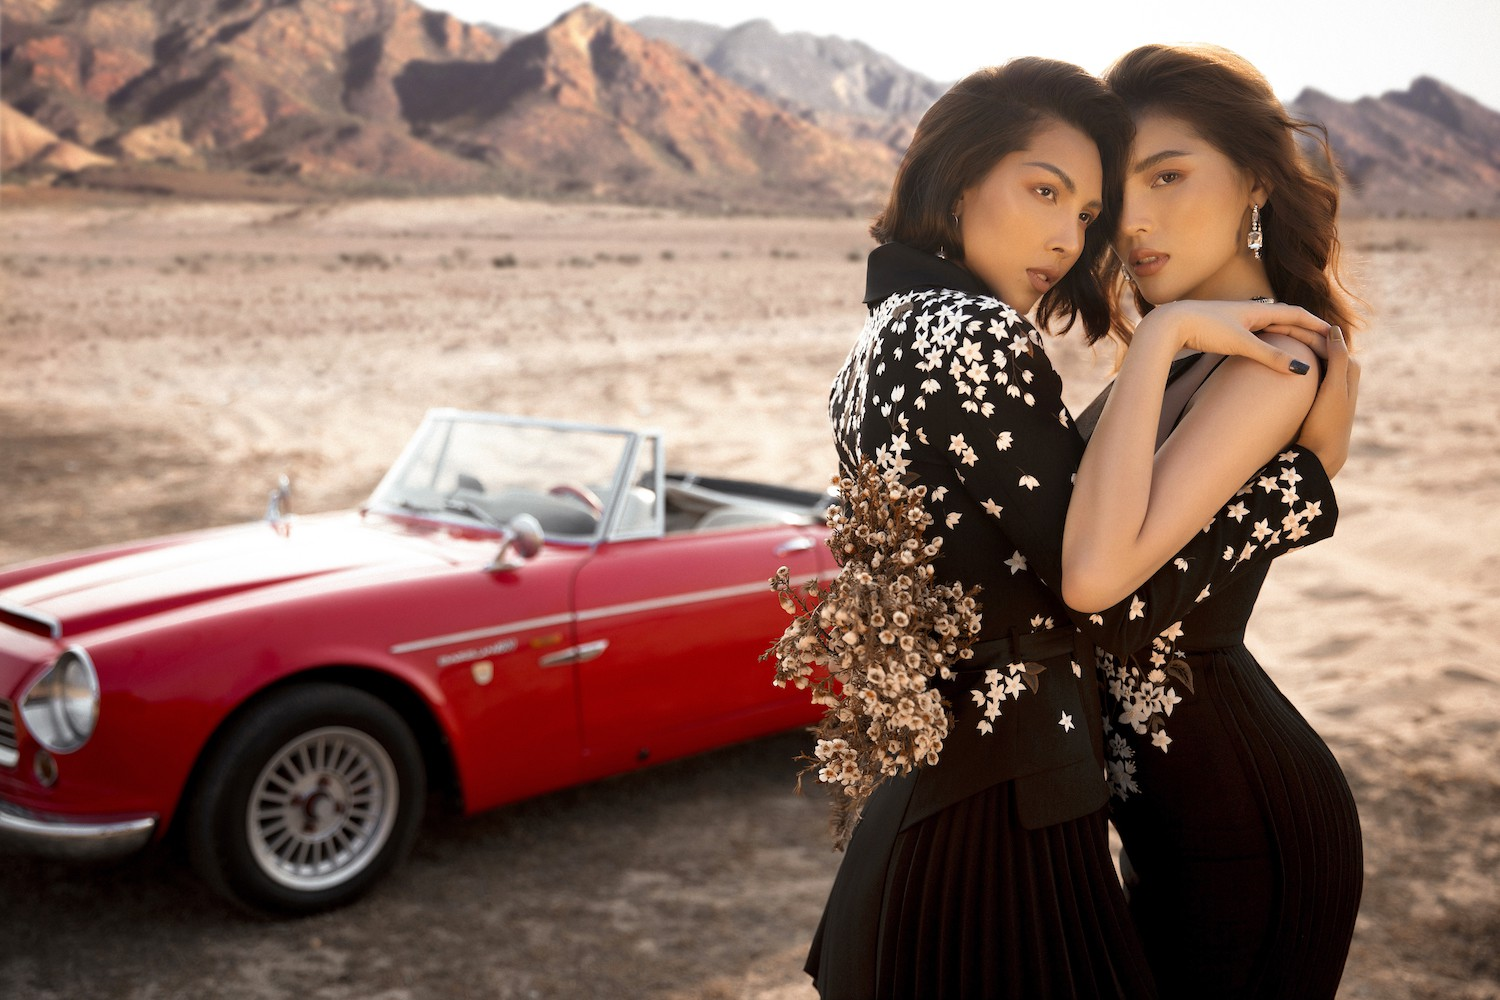 Cue Duyen and Minh Trieu became more and more attached and passionately accepted among the desert - Photo 4.